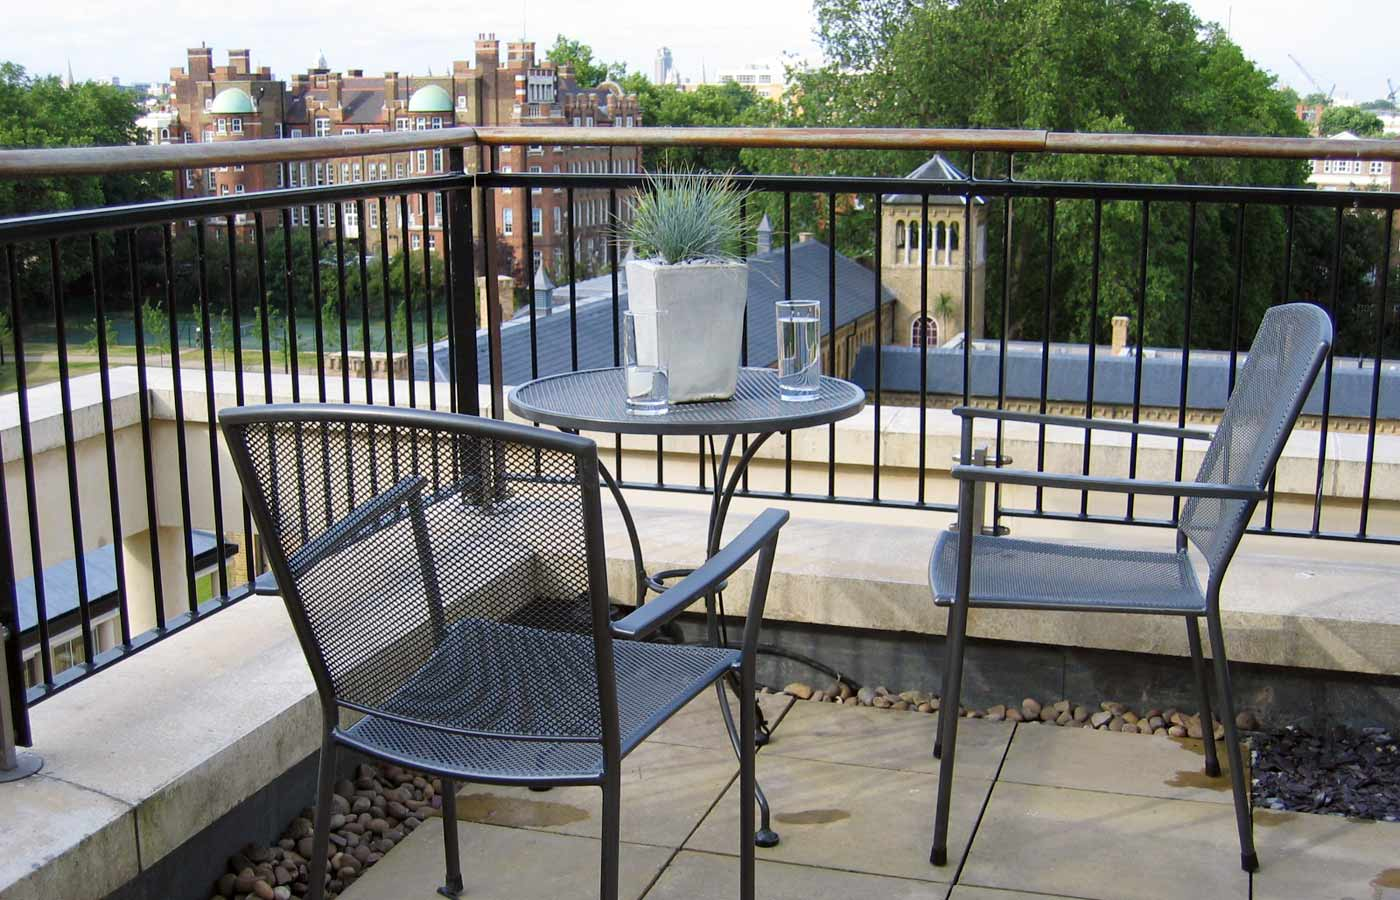 Roof terrace design fulham london for Terrace design